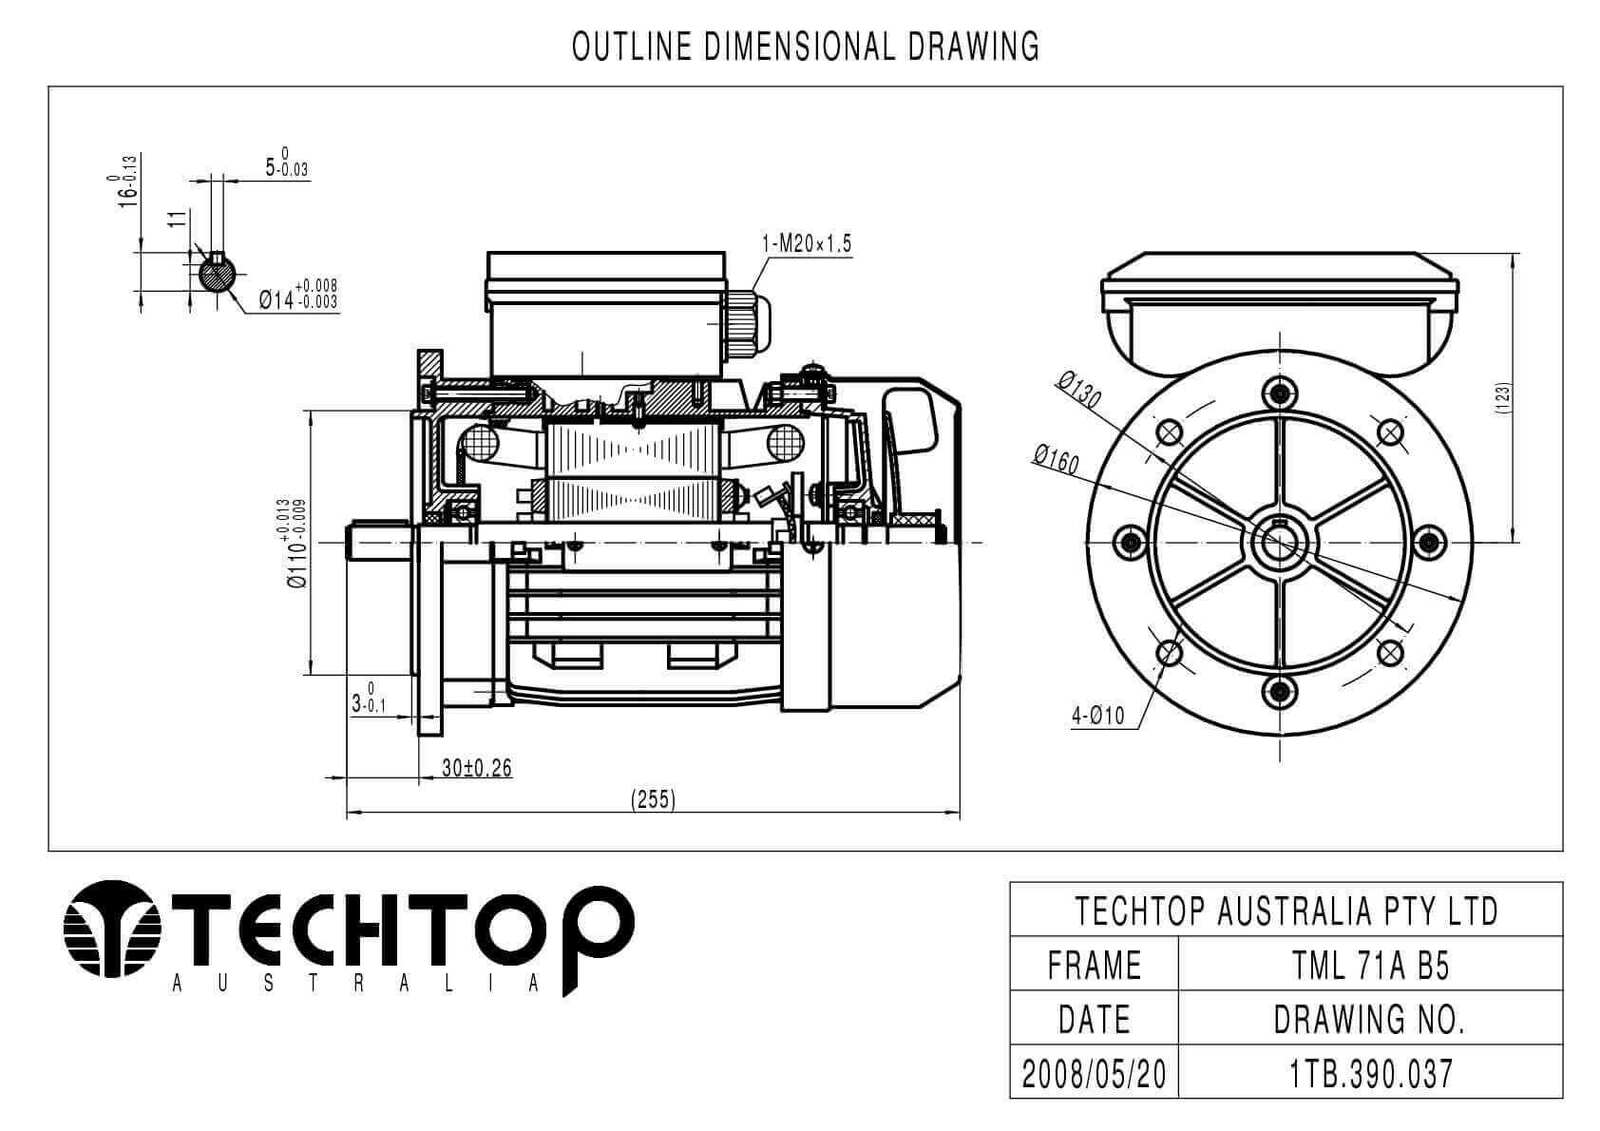 TechTop 0.37kW Motor 240V 1 Phase 2 Pole, 2780 RPM, Foot